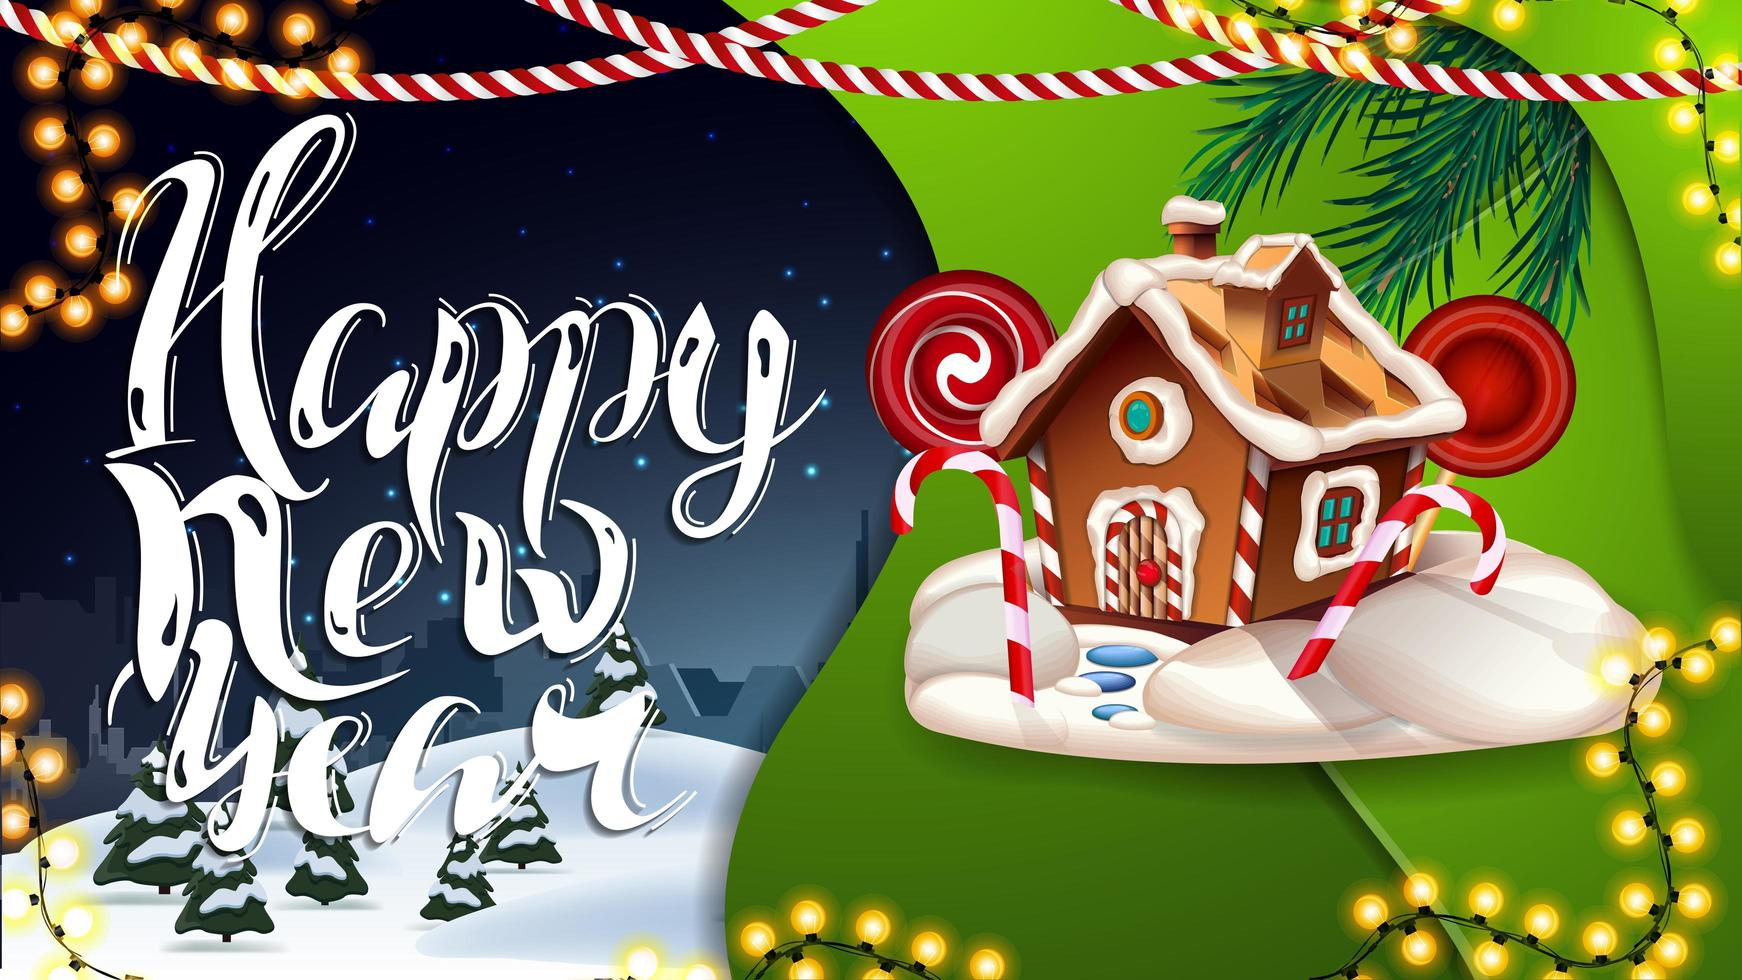 Happy New Year, blue and green postcard with garlands, winter landscape and Christmas gingerbread house vector